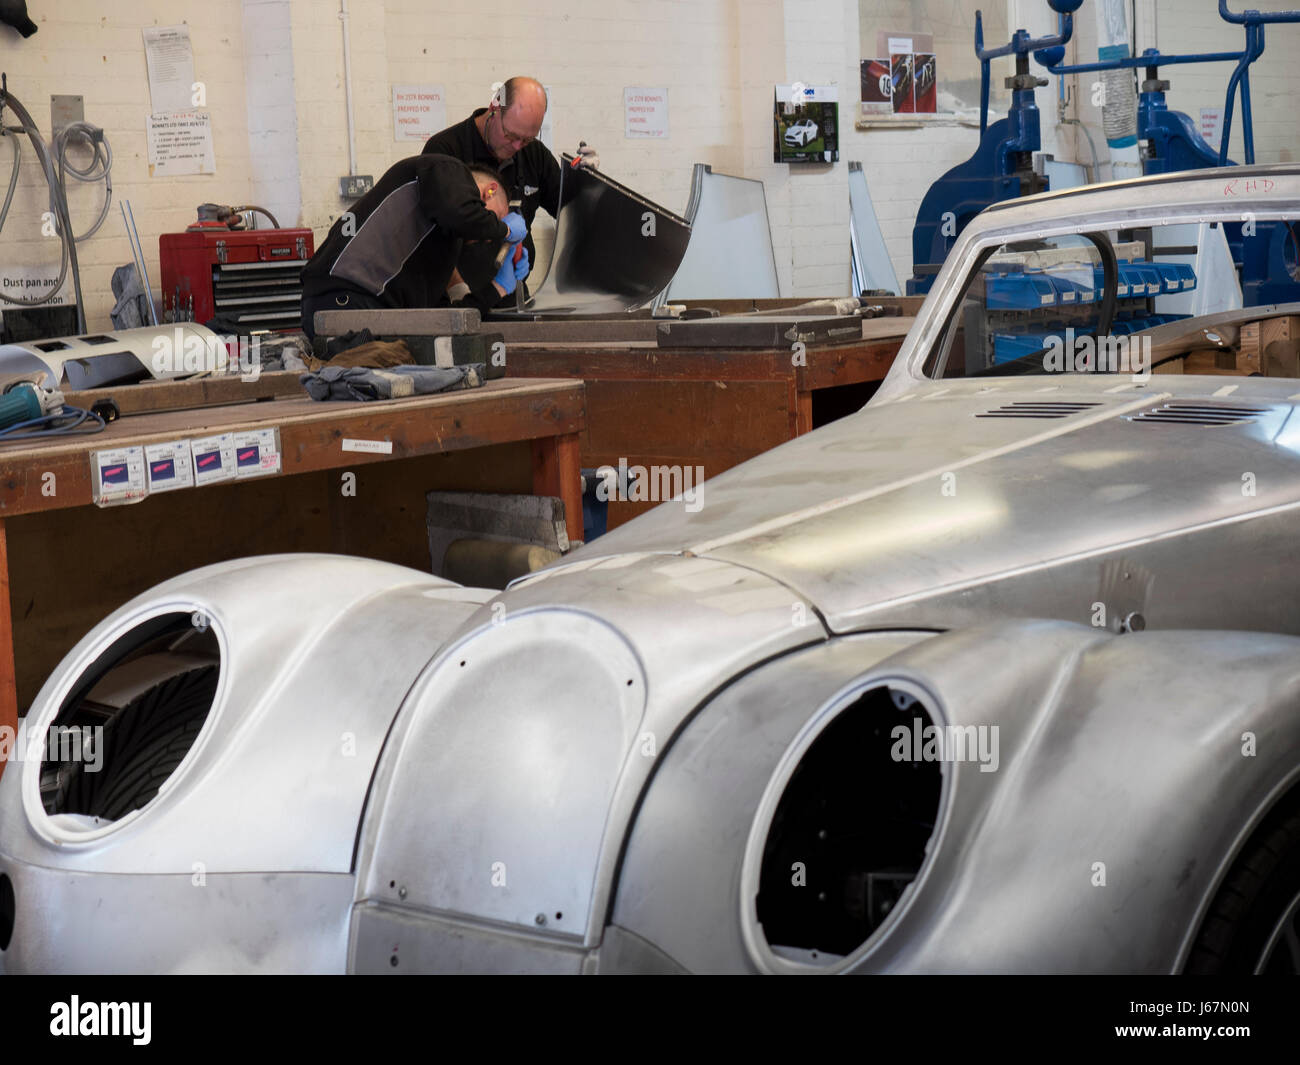 Morgan sports cars parked in the employee parking lot at the Malvern, England Morgan Motor Co. factory. - Stock Image